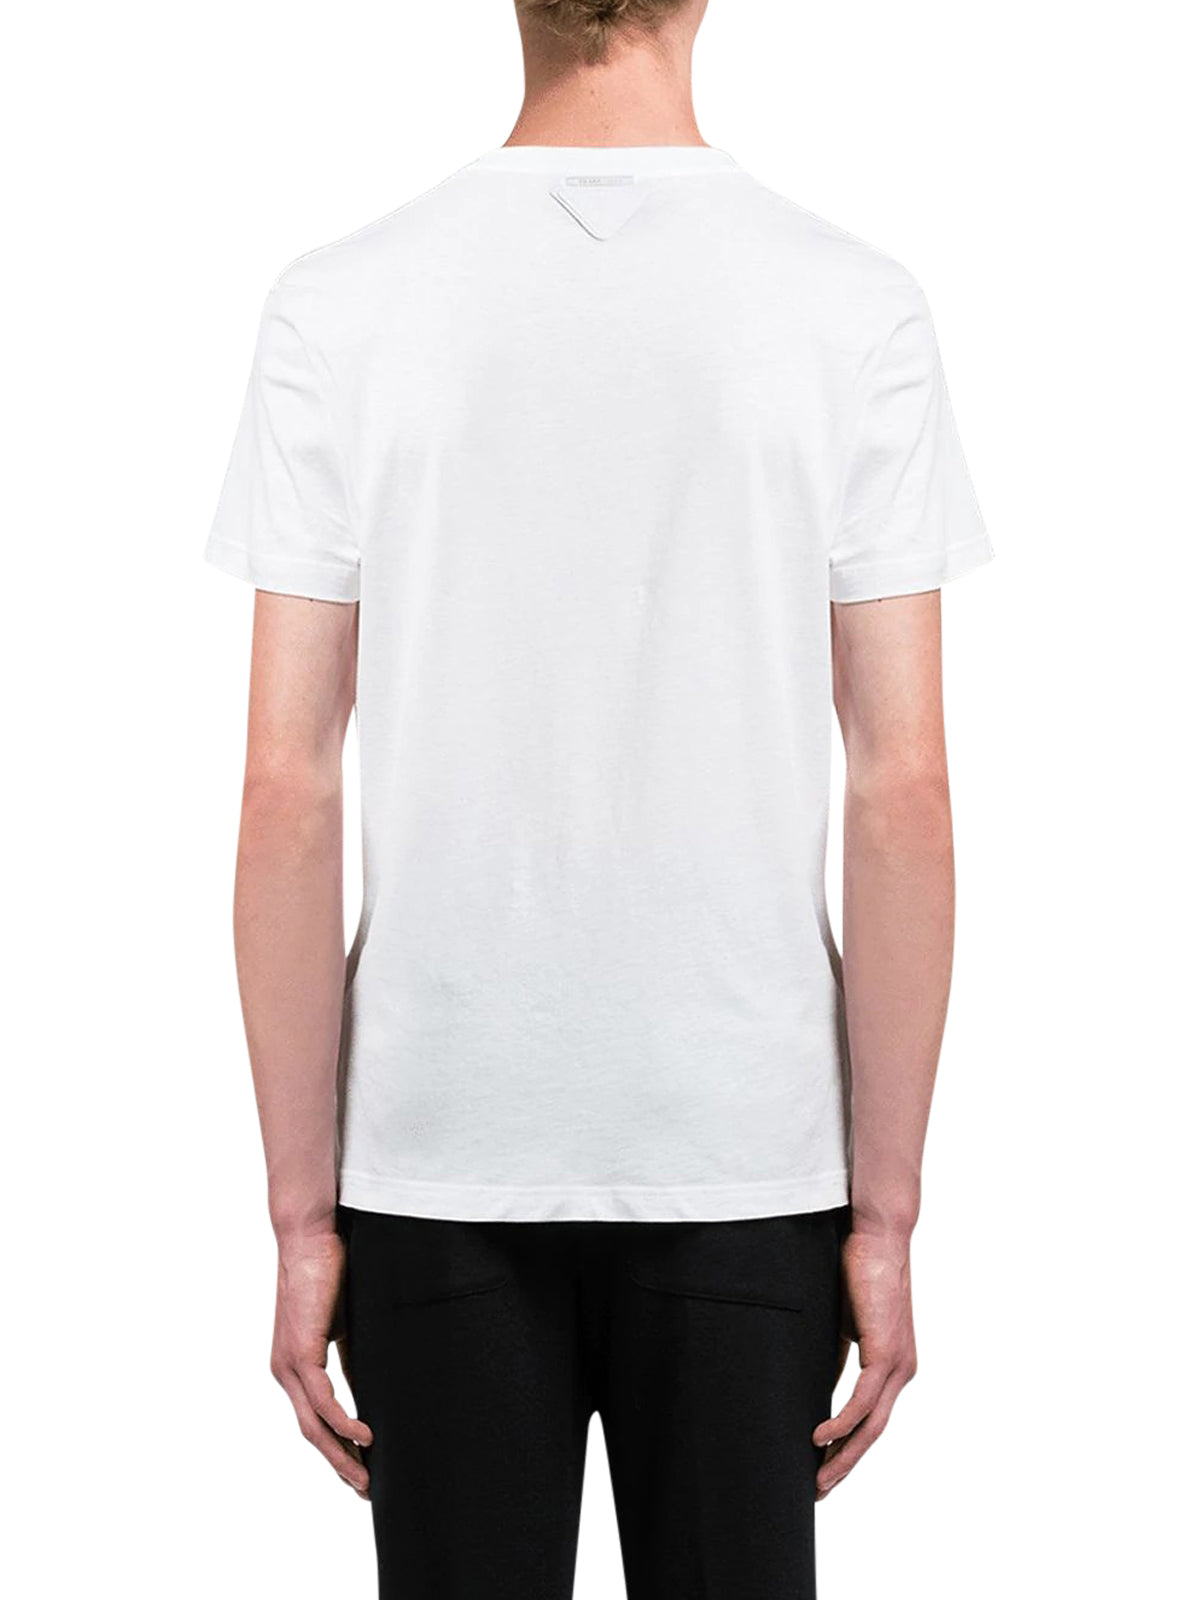 BASIC COTTON TSHIRT